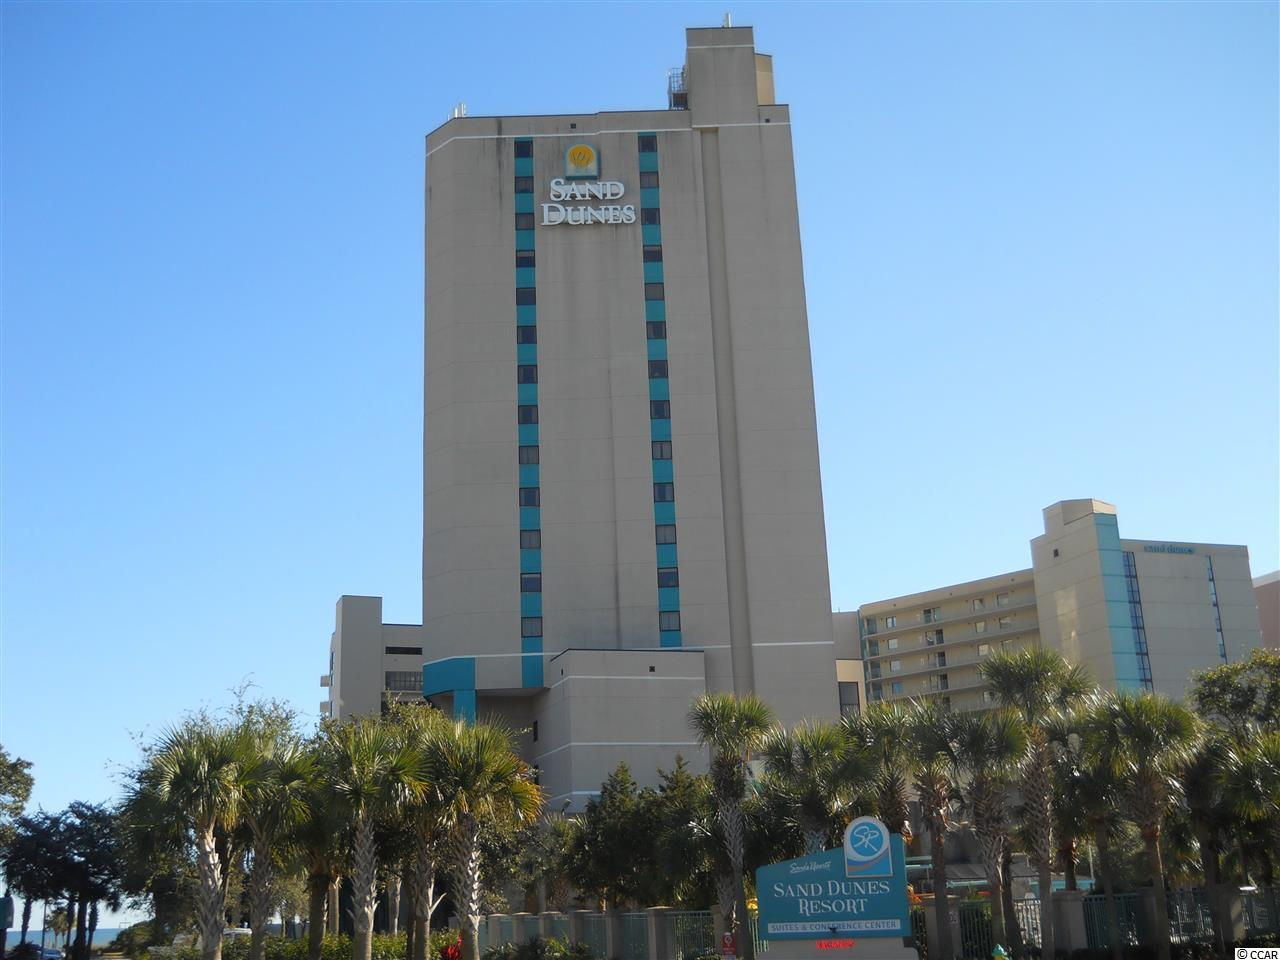 Ocean Front,Ocean View Condo in SAND DUNES PHII : Myrtle Beach South Carolina